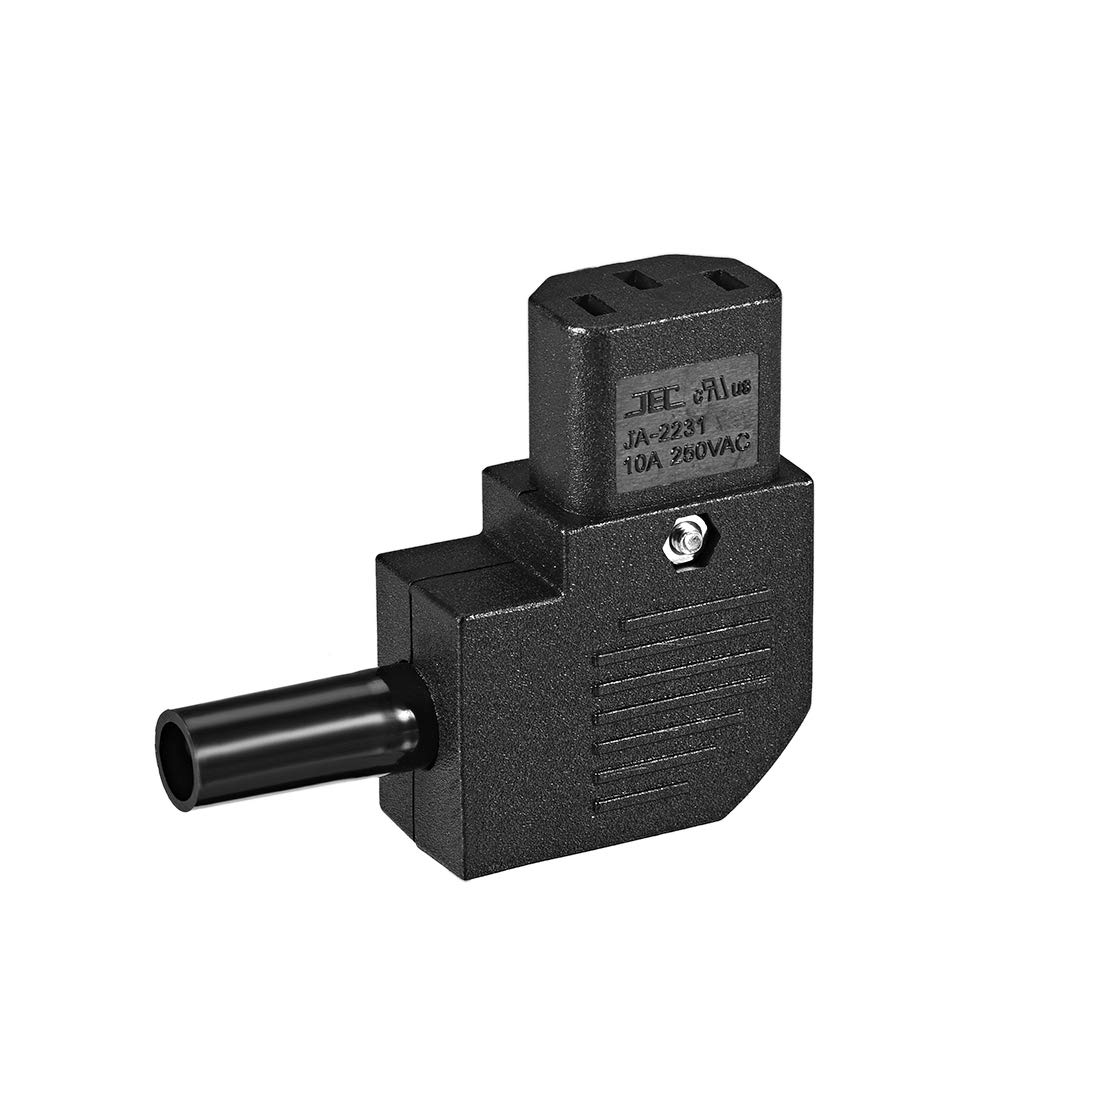 uxcell AC110-250V 10A Female IEC320 C13 Power Socket Adapter Connector Right Angle 2 Pcs